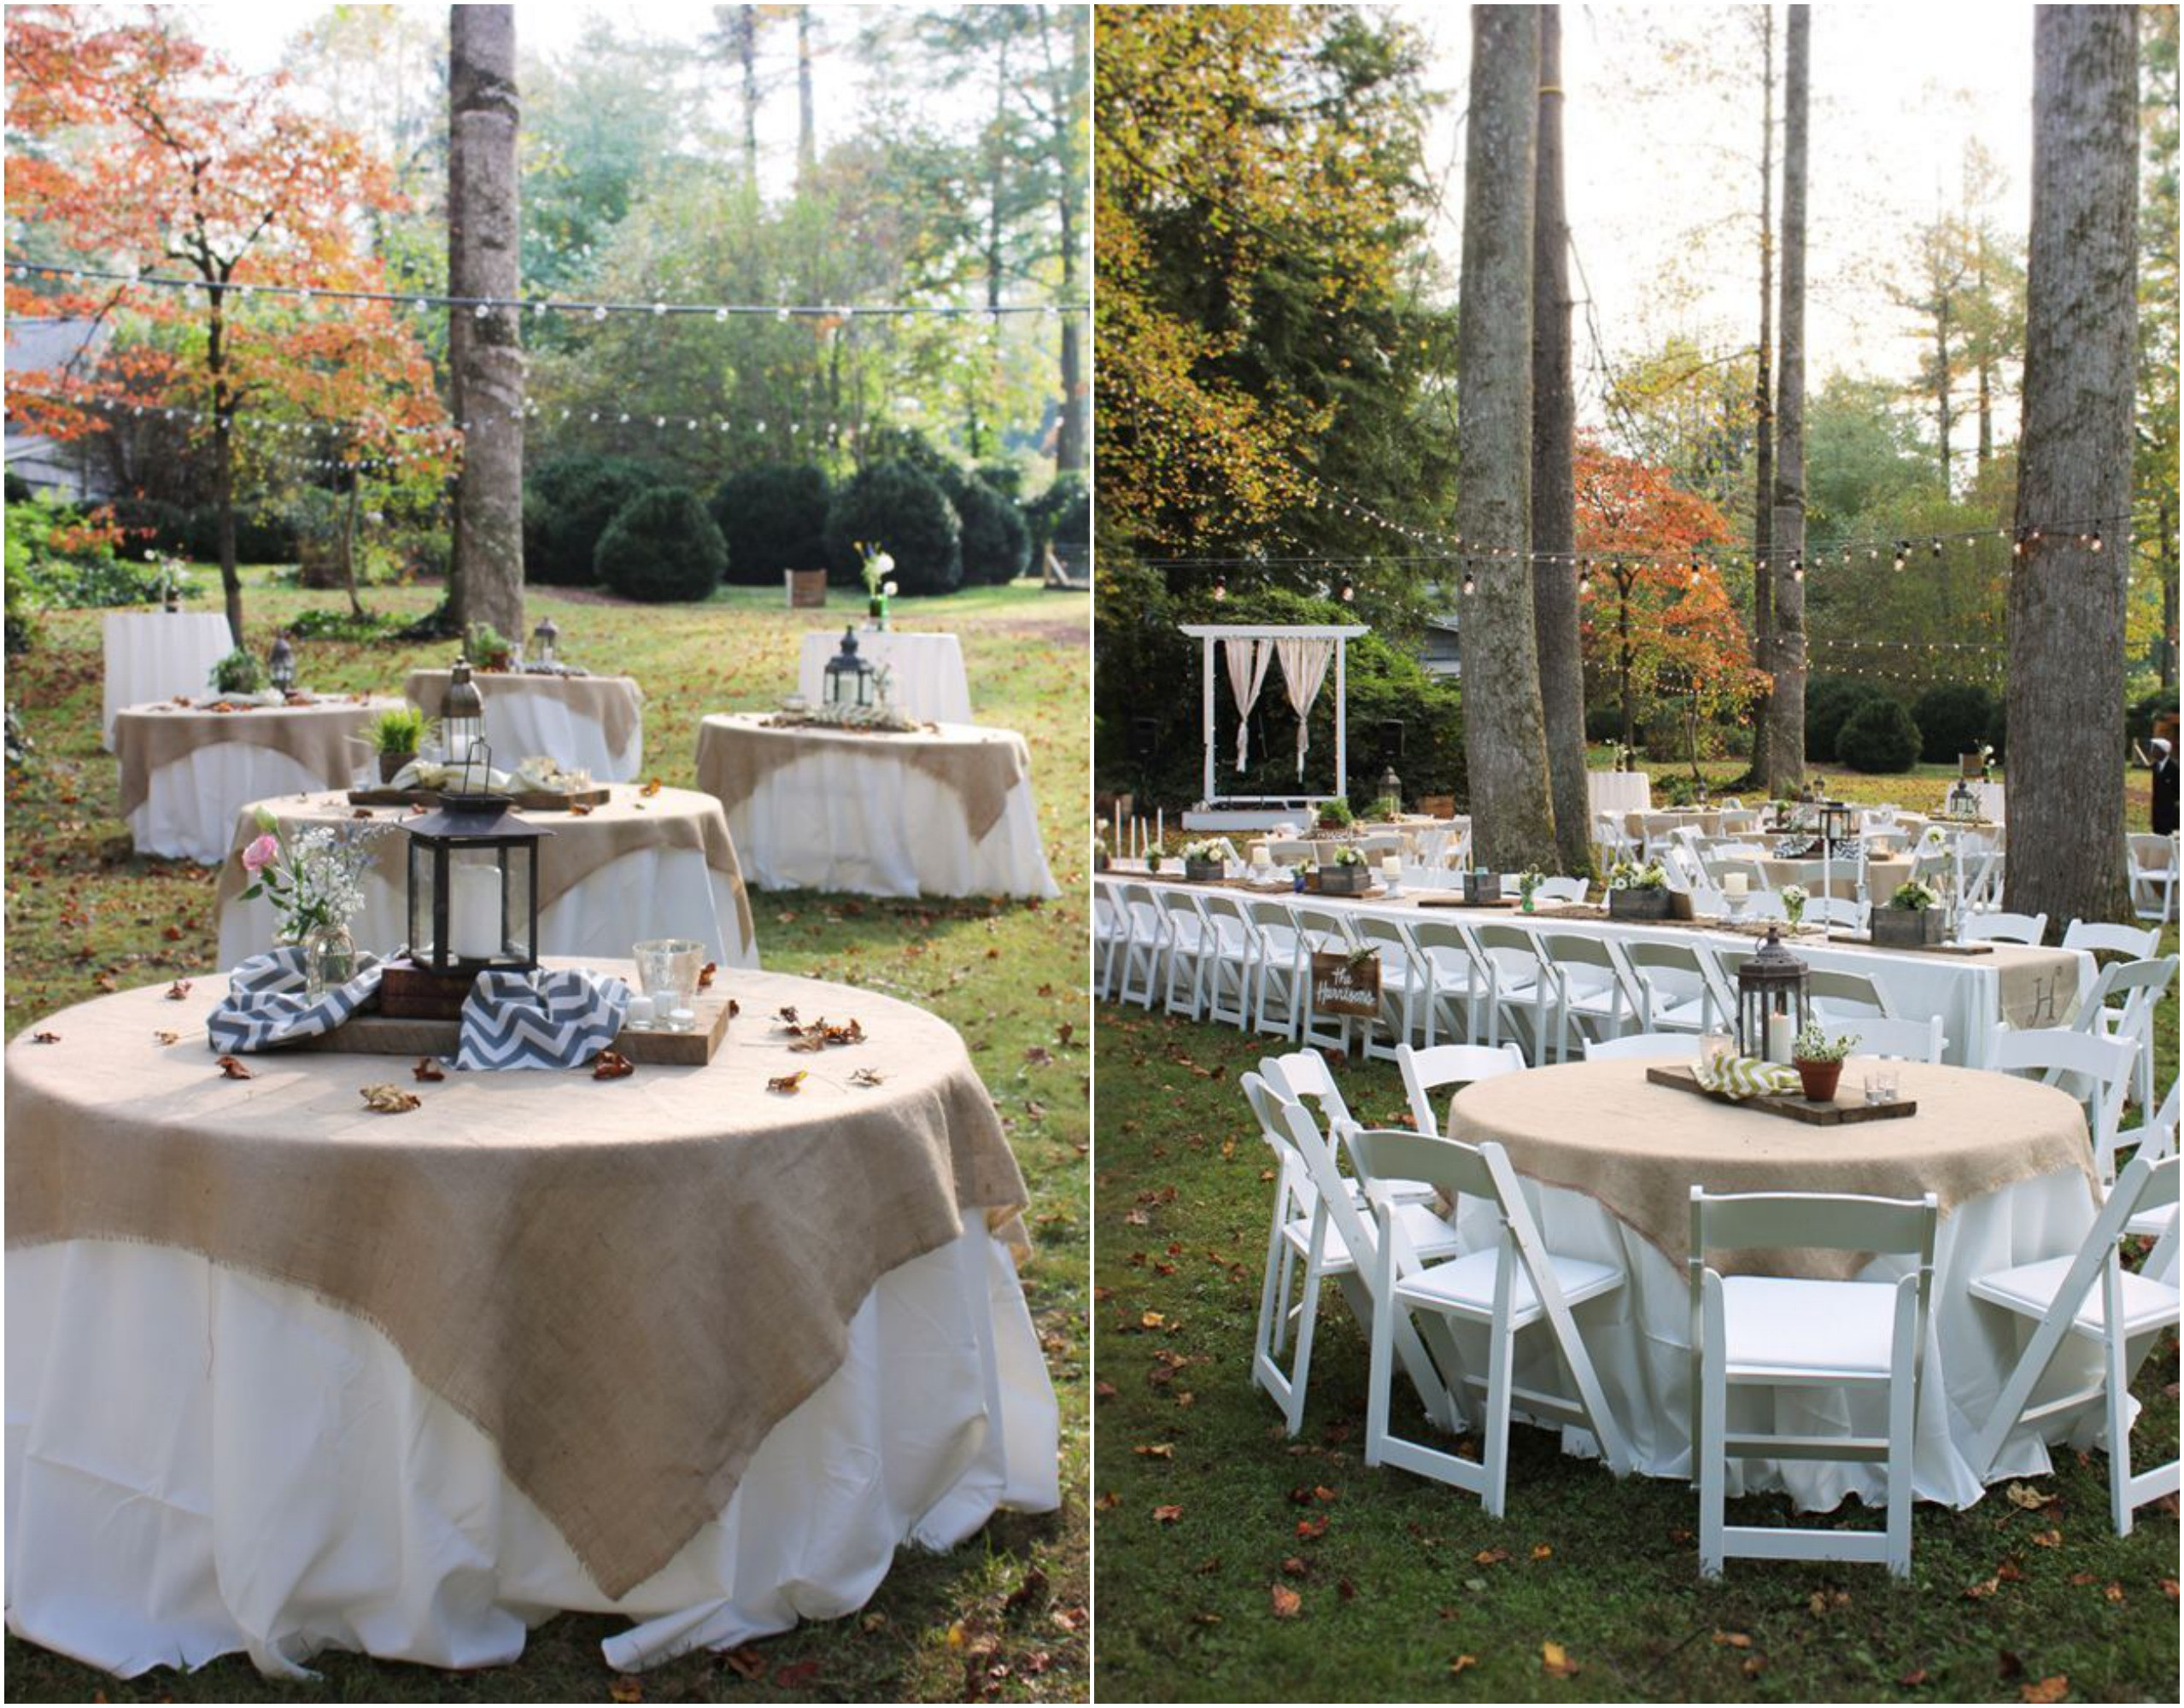 Catering Ideas For Backyard Party  Rustic wedding